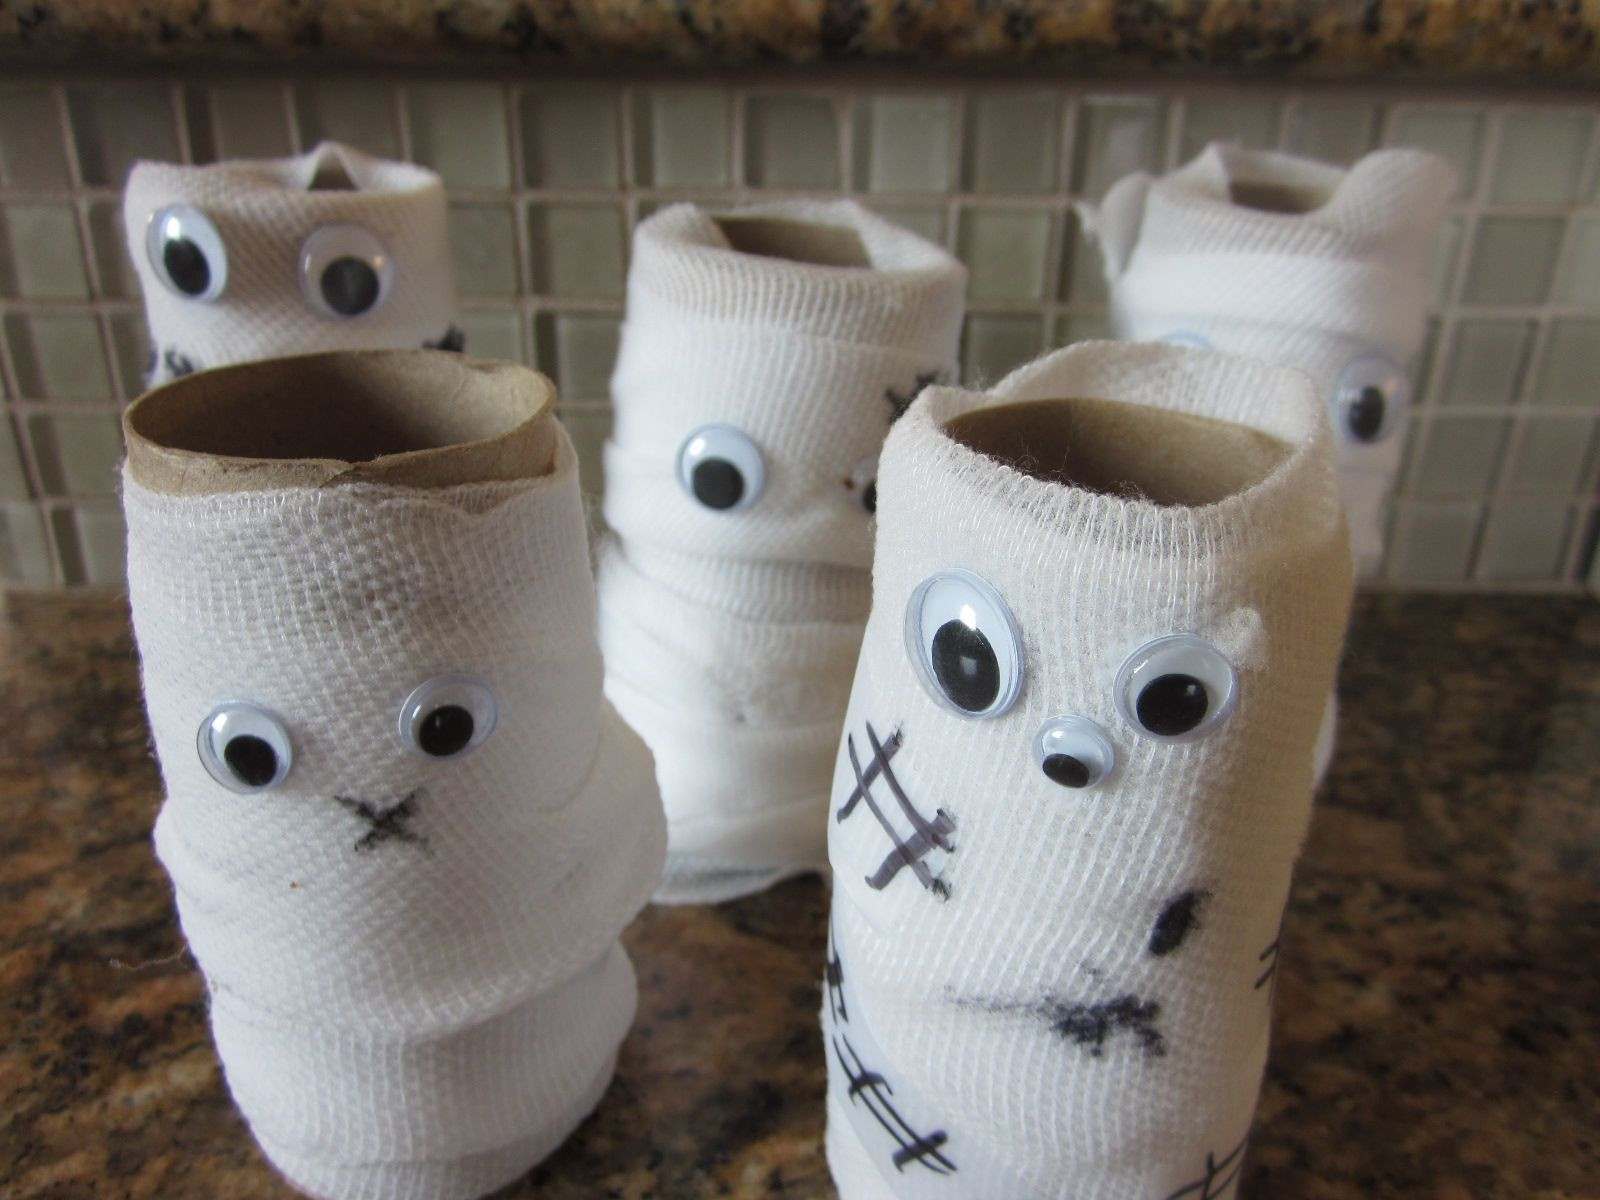 Toilet Paper Roll Halloween Decorations  Pin by Misty Gutierrez on Holiday Ideas